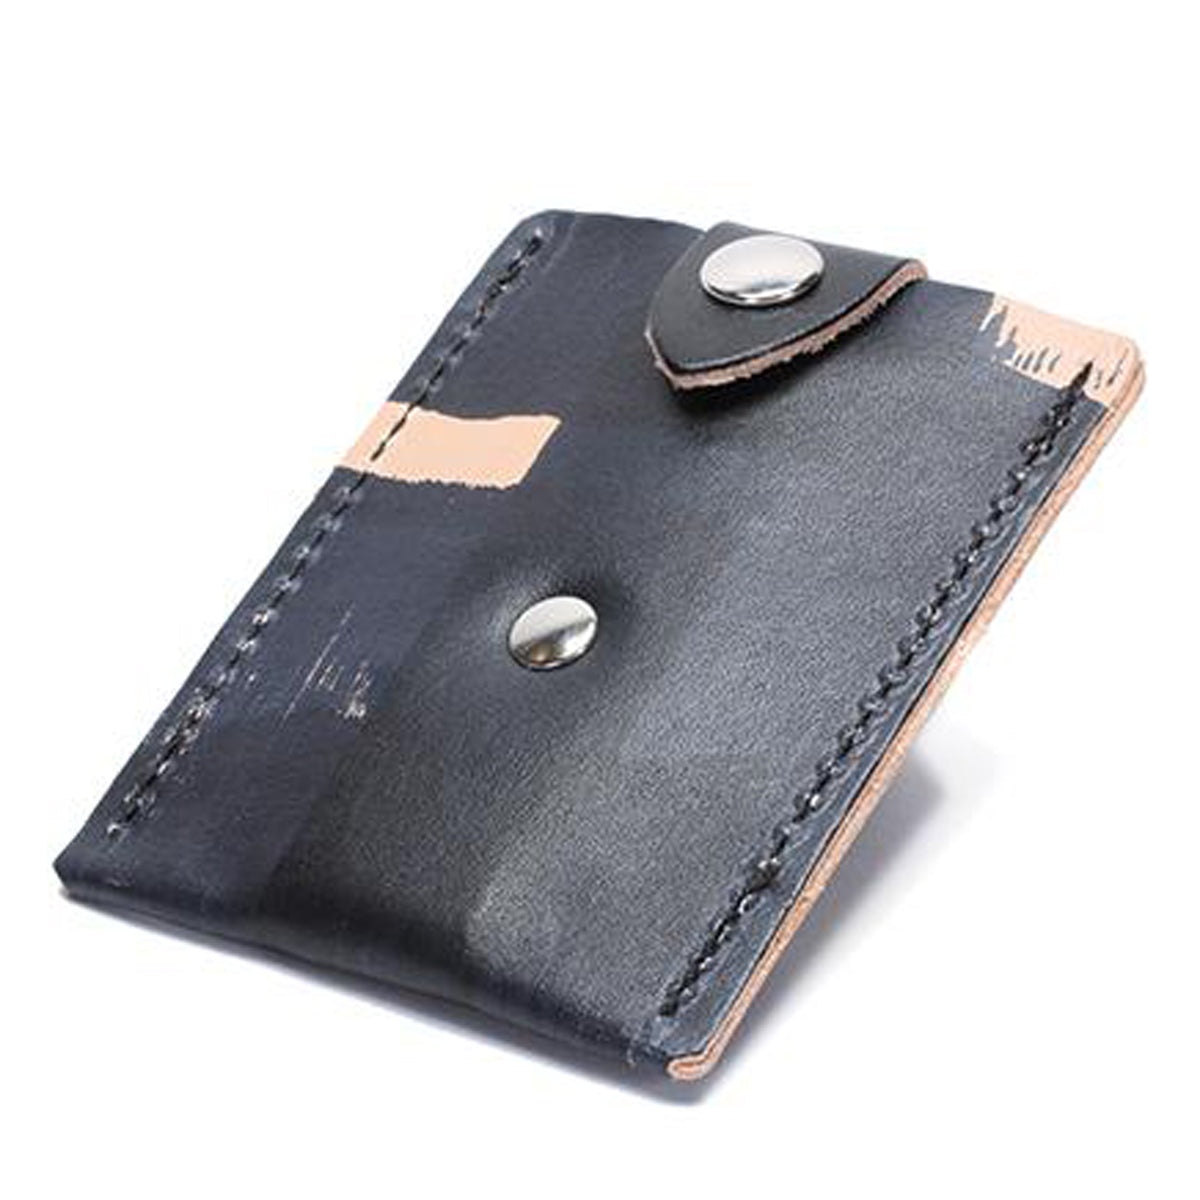 Fiveleft Leather Pop-Up Wallet